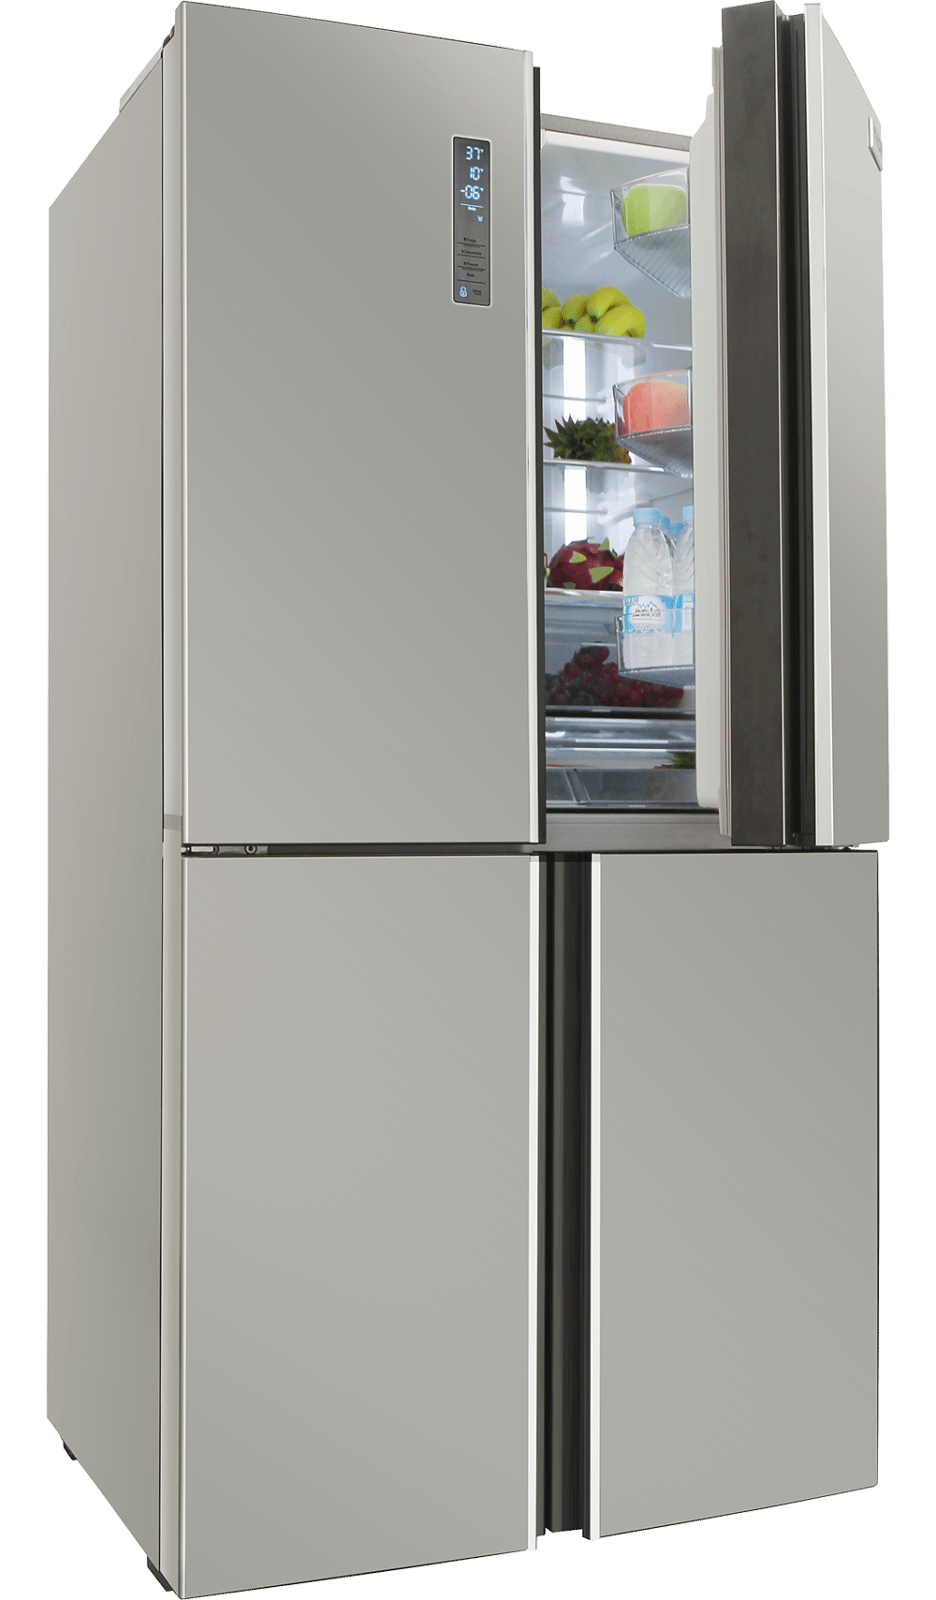 Thor Kitchen36 Inch French Door Refrigerator In Stainless Steel, Counter Depth